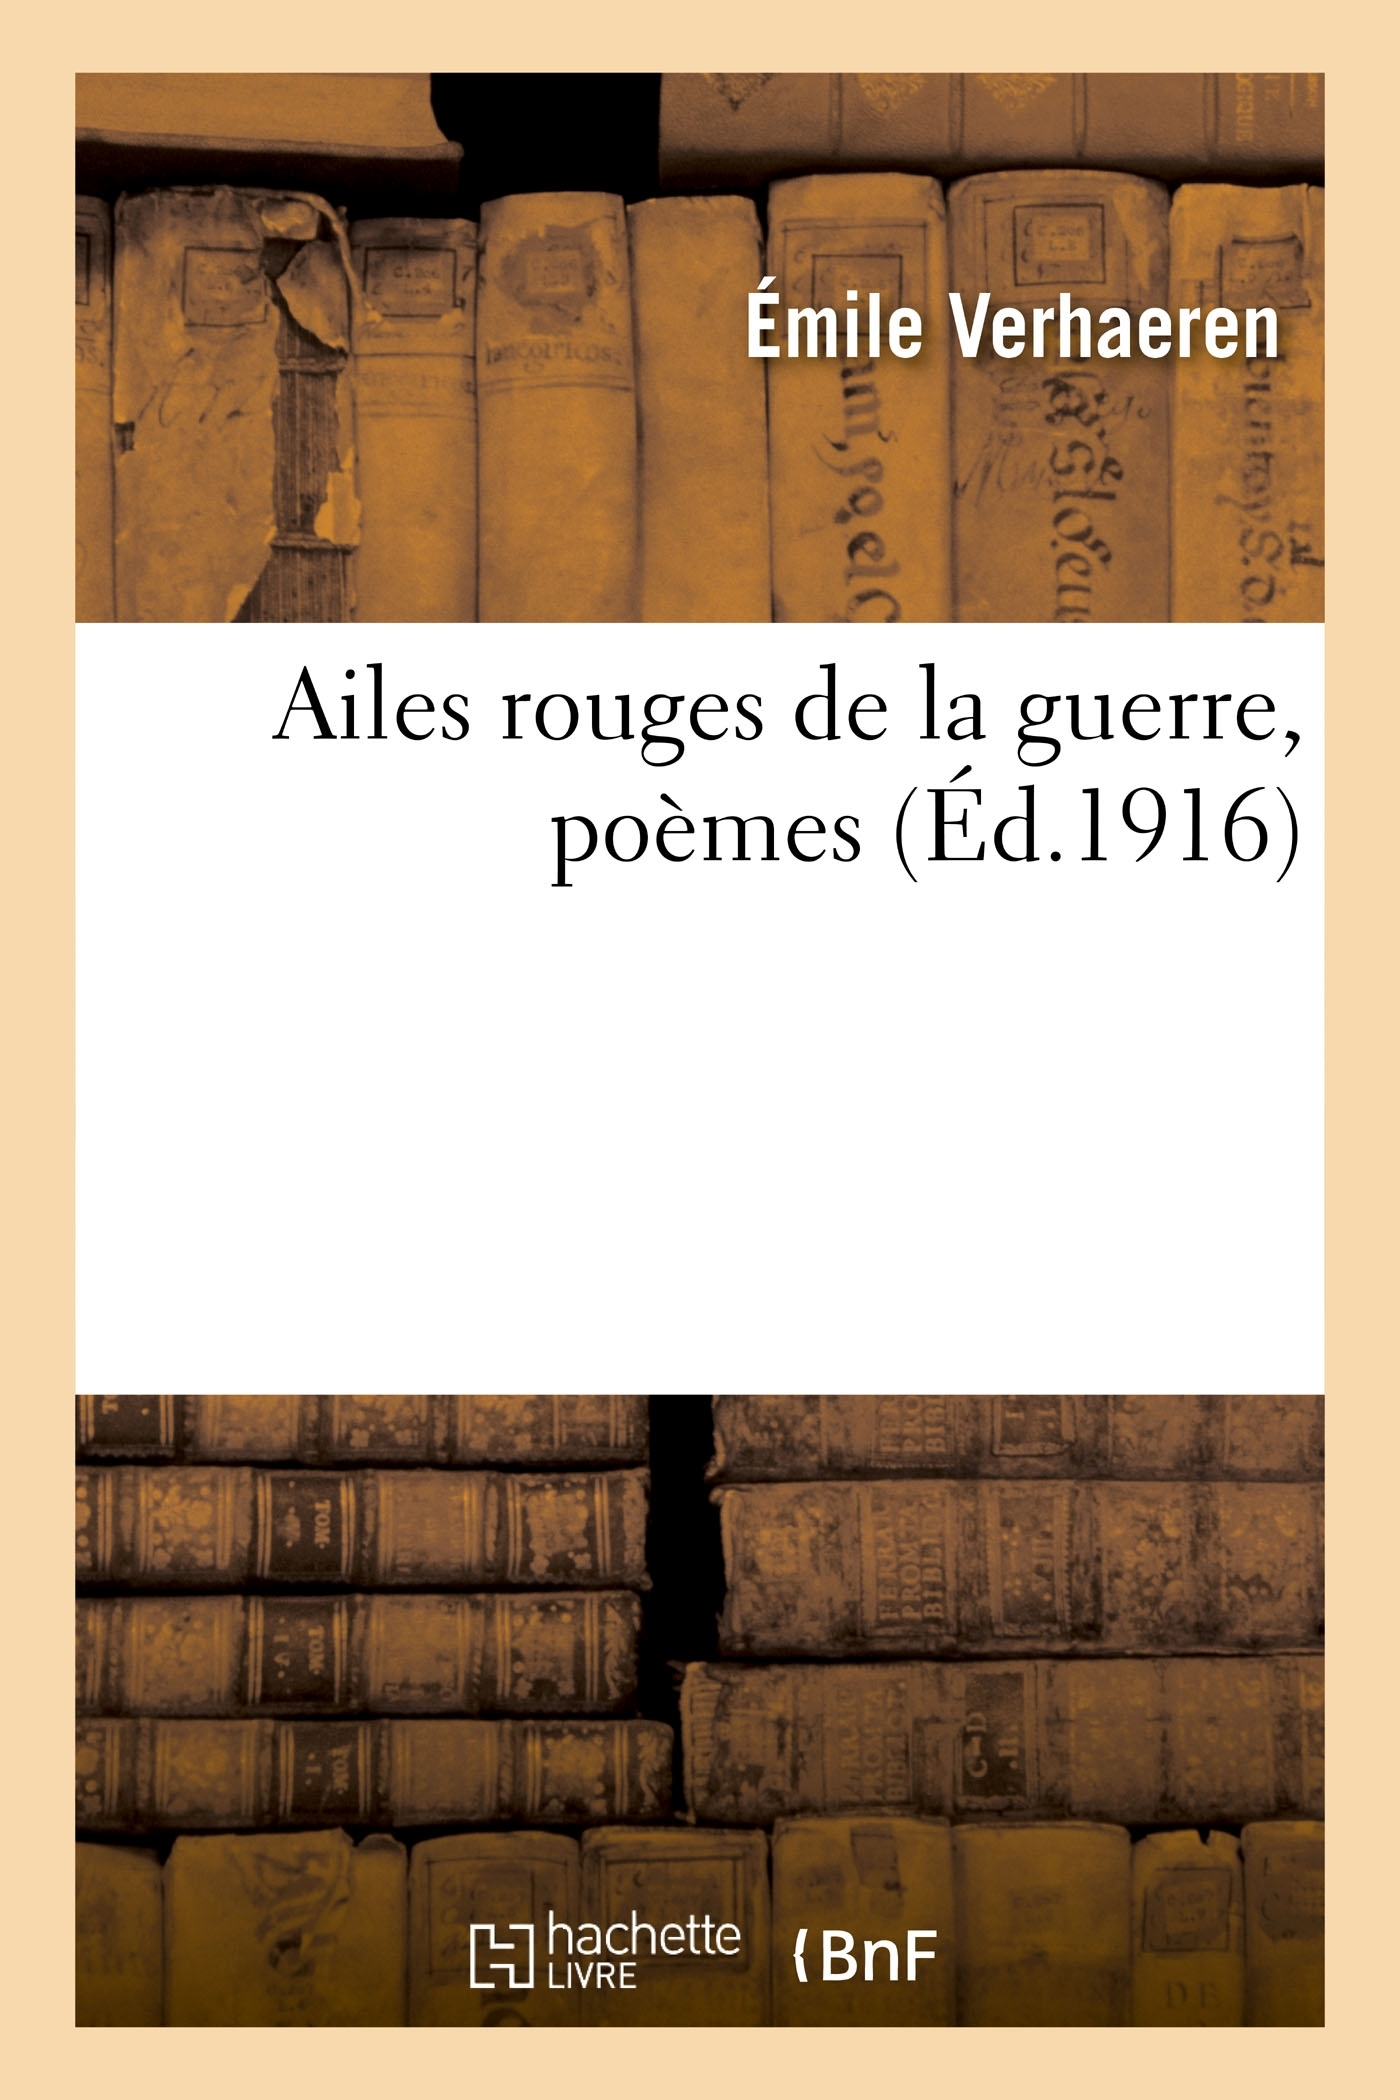 AILES ROUGES DE LA GUERRE, POEMES